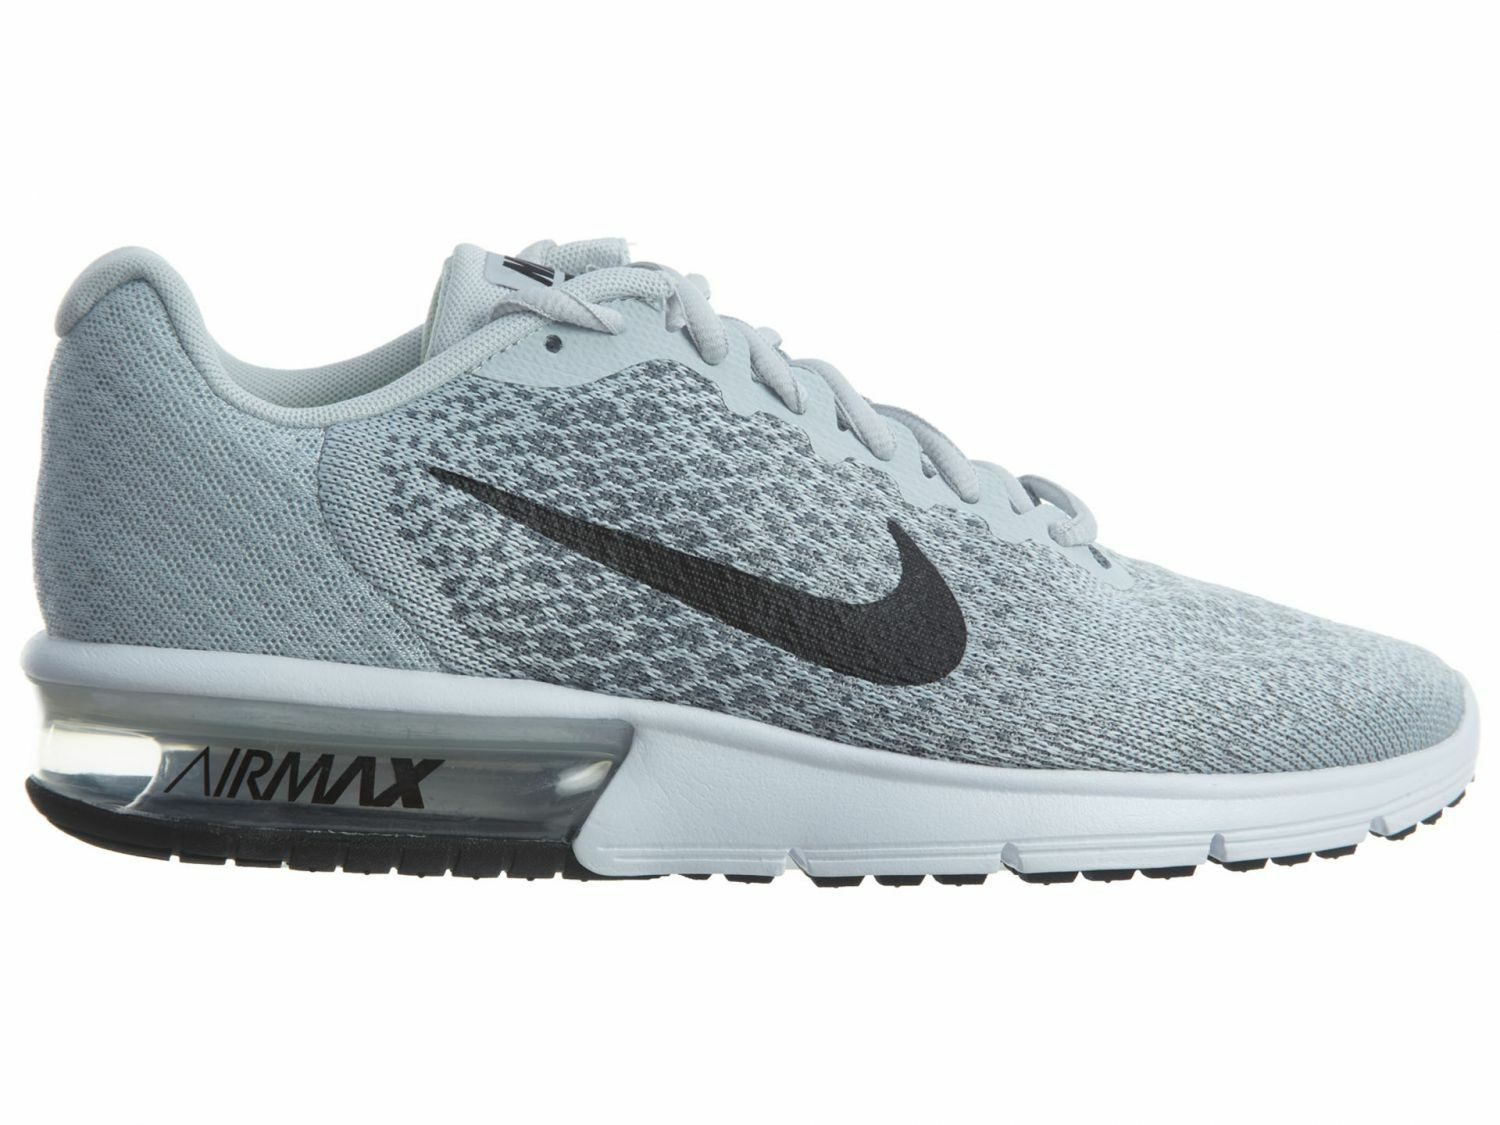 Nike Air Max Sequent 2 Womens 852465-001 Platinum Grey Running Shoes Size 6